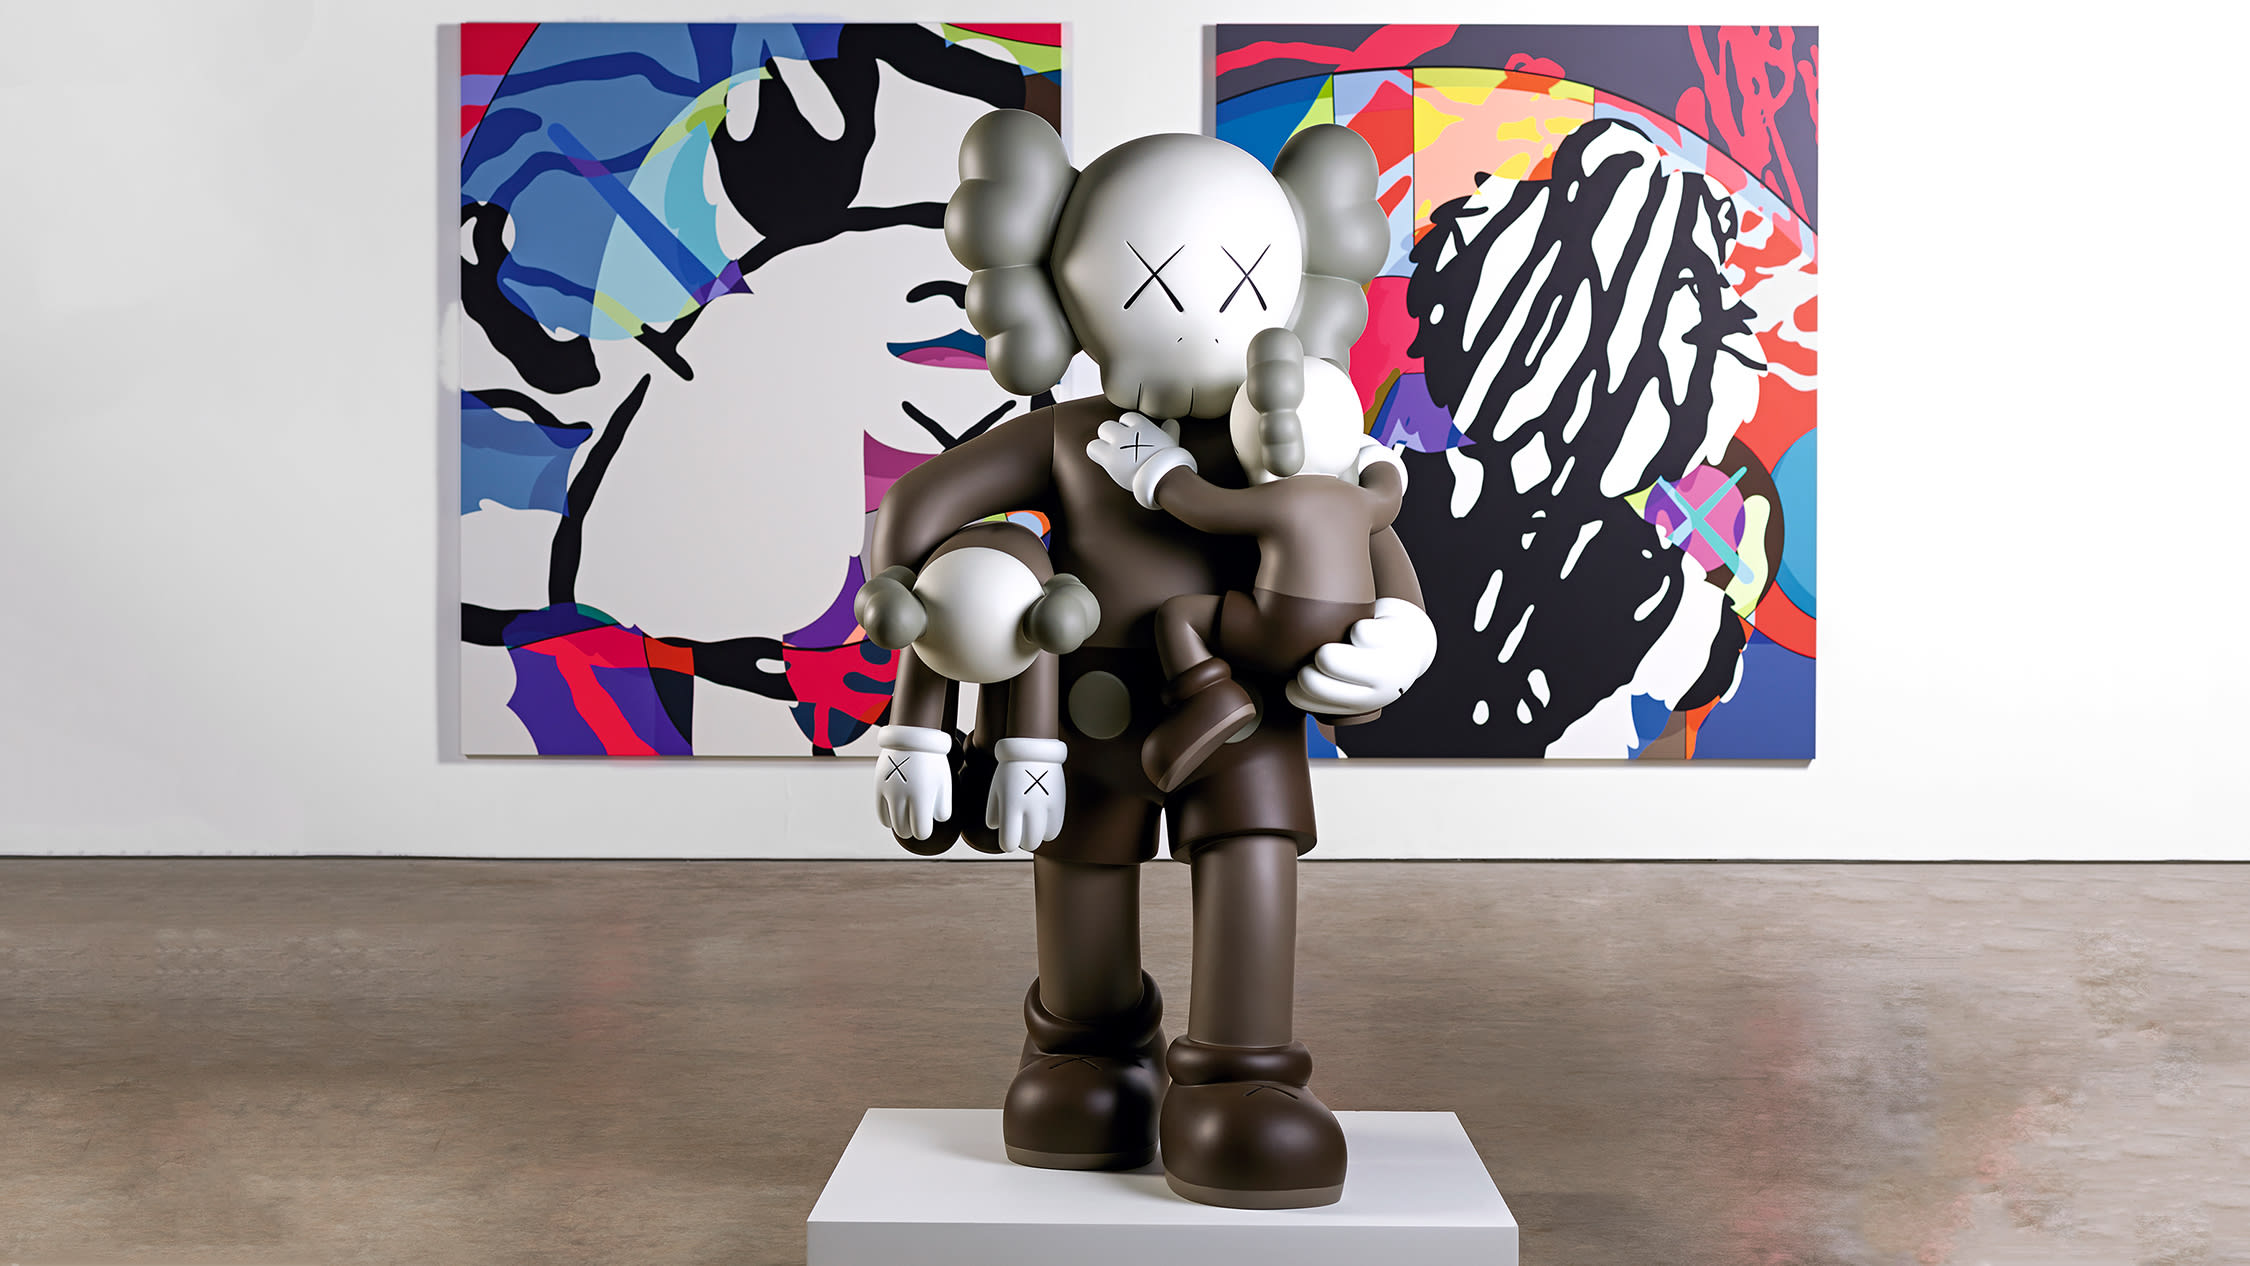 The KAWS phenomenon